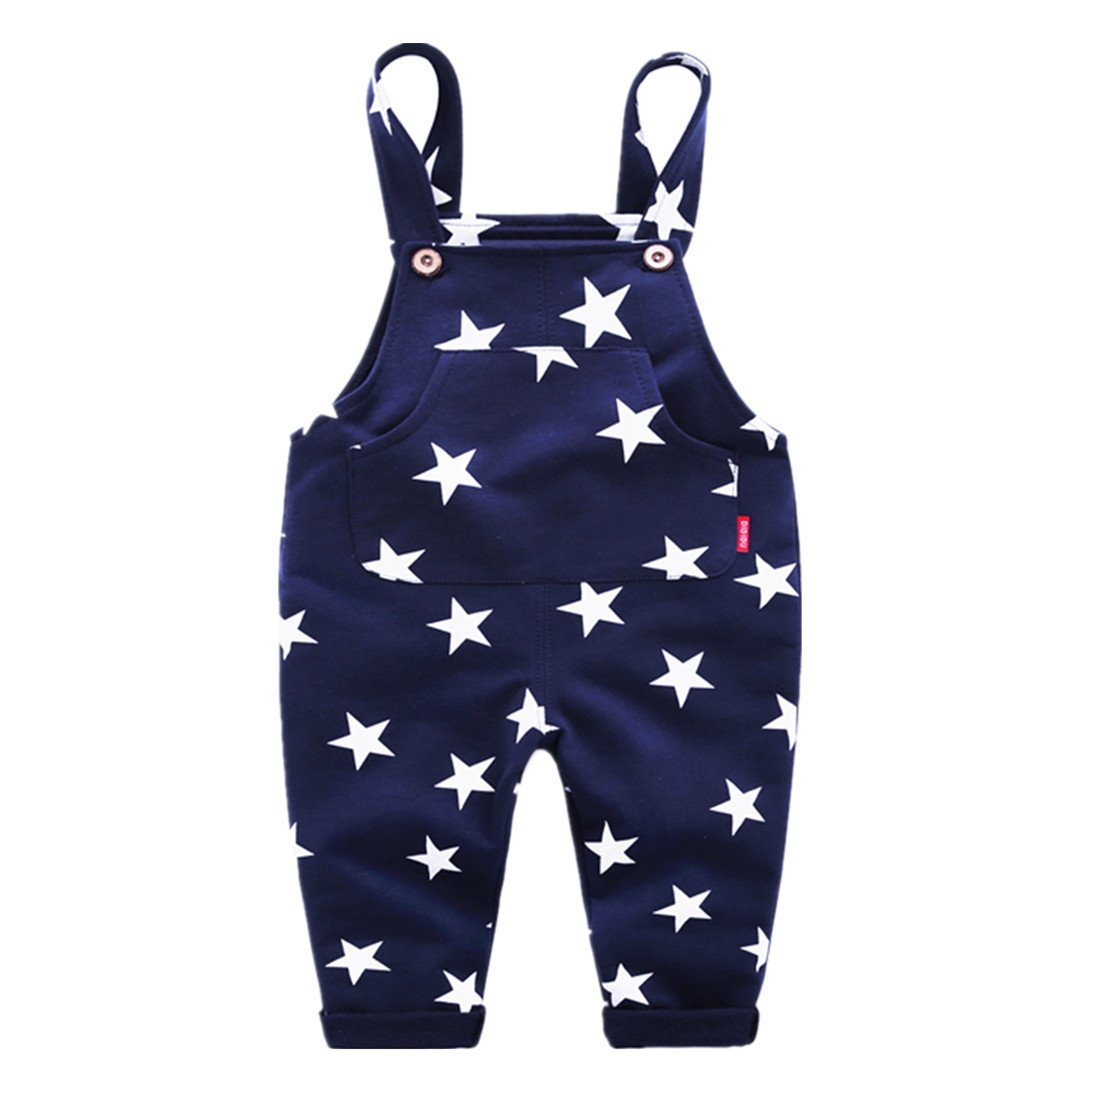 Sooxiwood Little Boys Overall Star Pocket Size 6 Navy